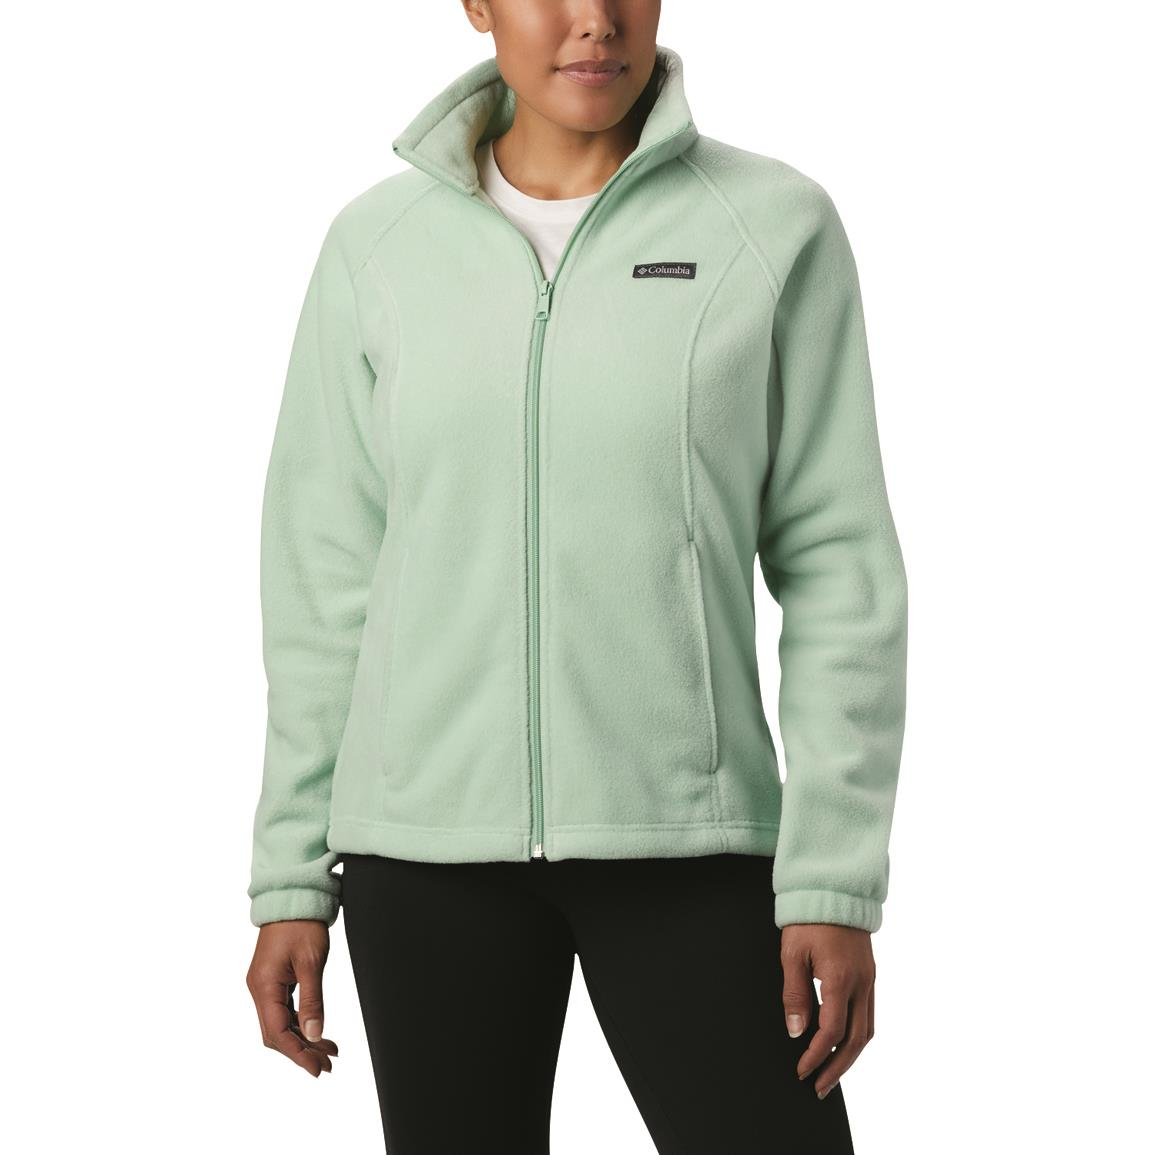 Columbia Women's Benton Springs Full Zip Fleece Jacket, New Mint